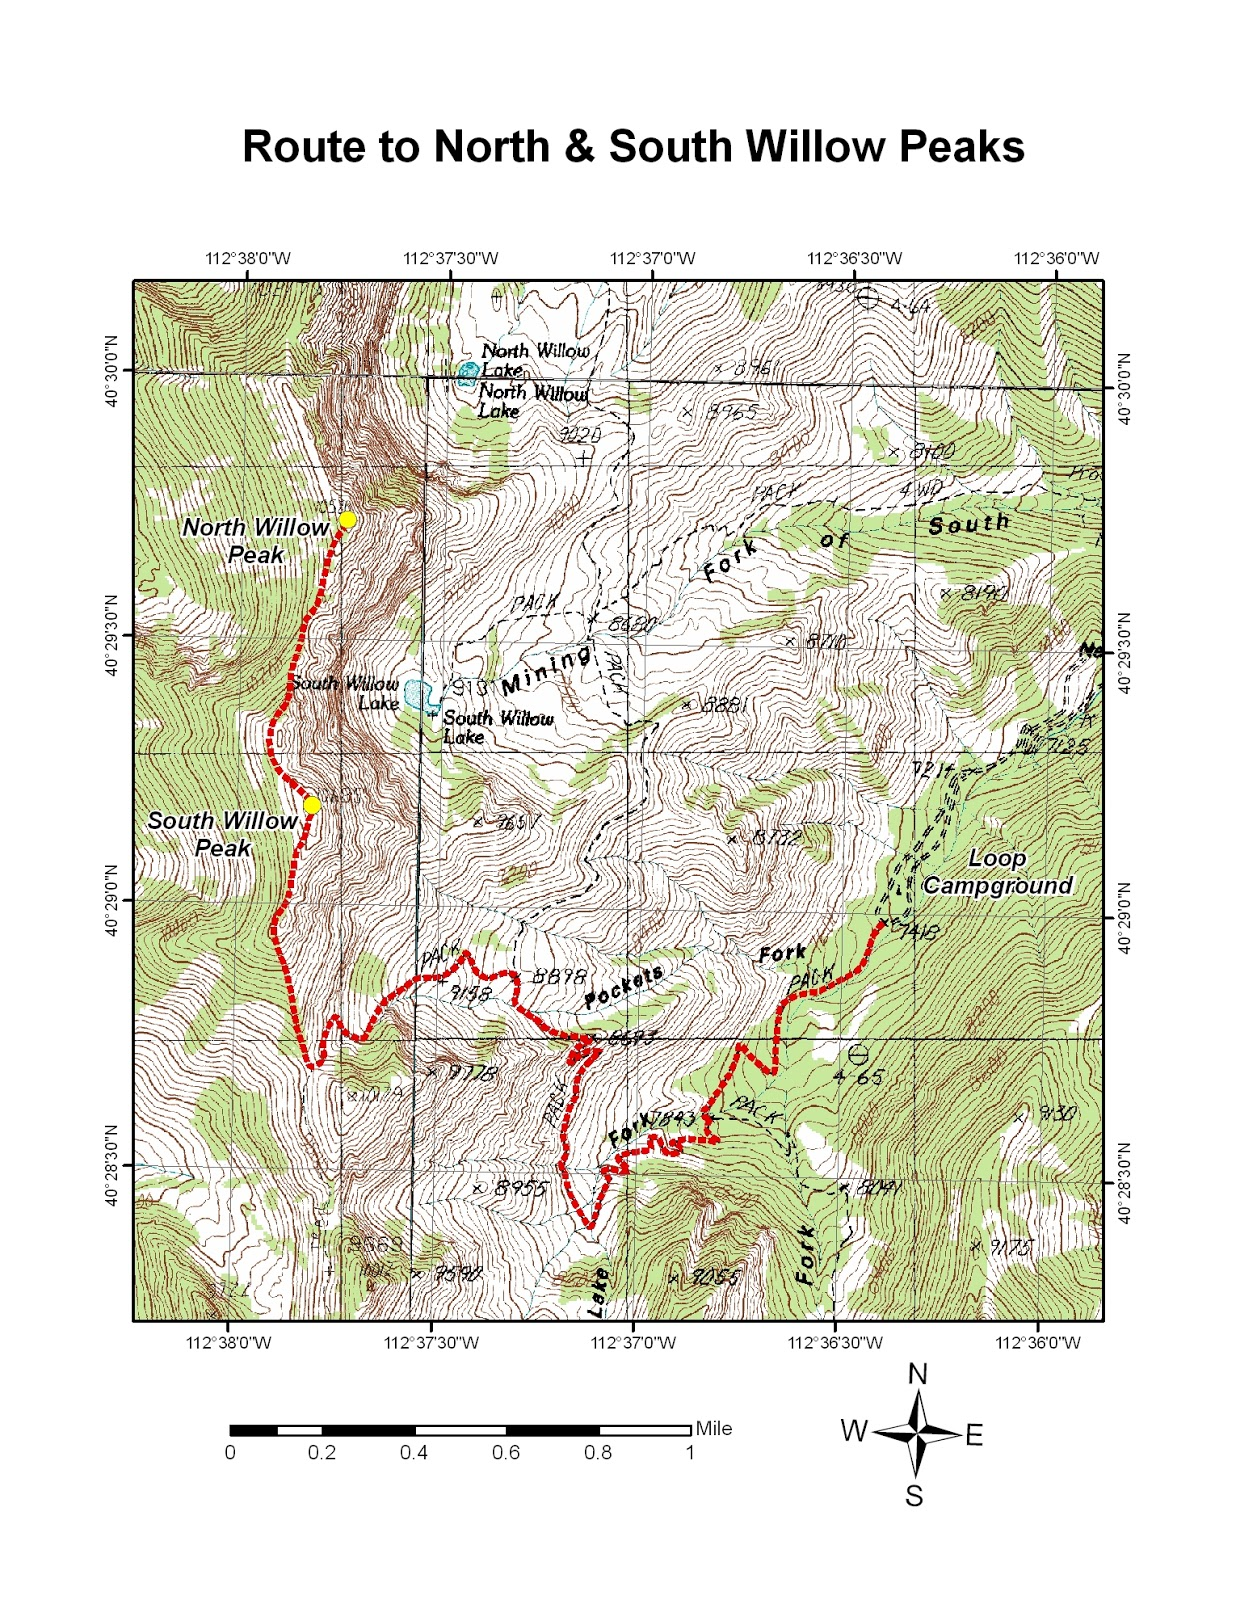 to reach the trailhead for north and south willow peaks take the tooele city exit exit 99 off of i 80 onto sr 36 if coming from the east